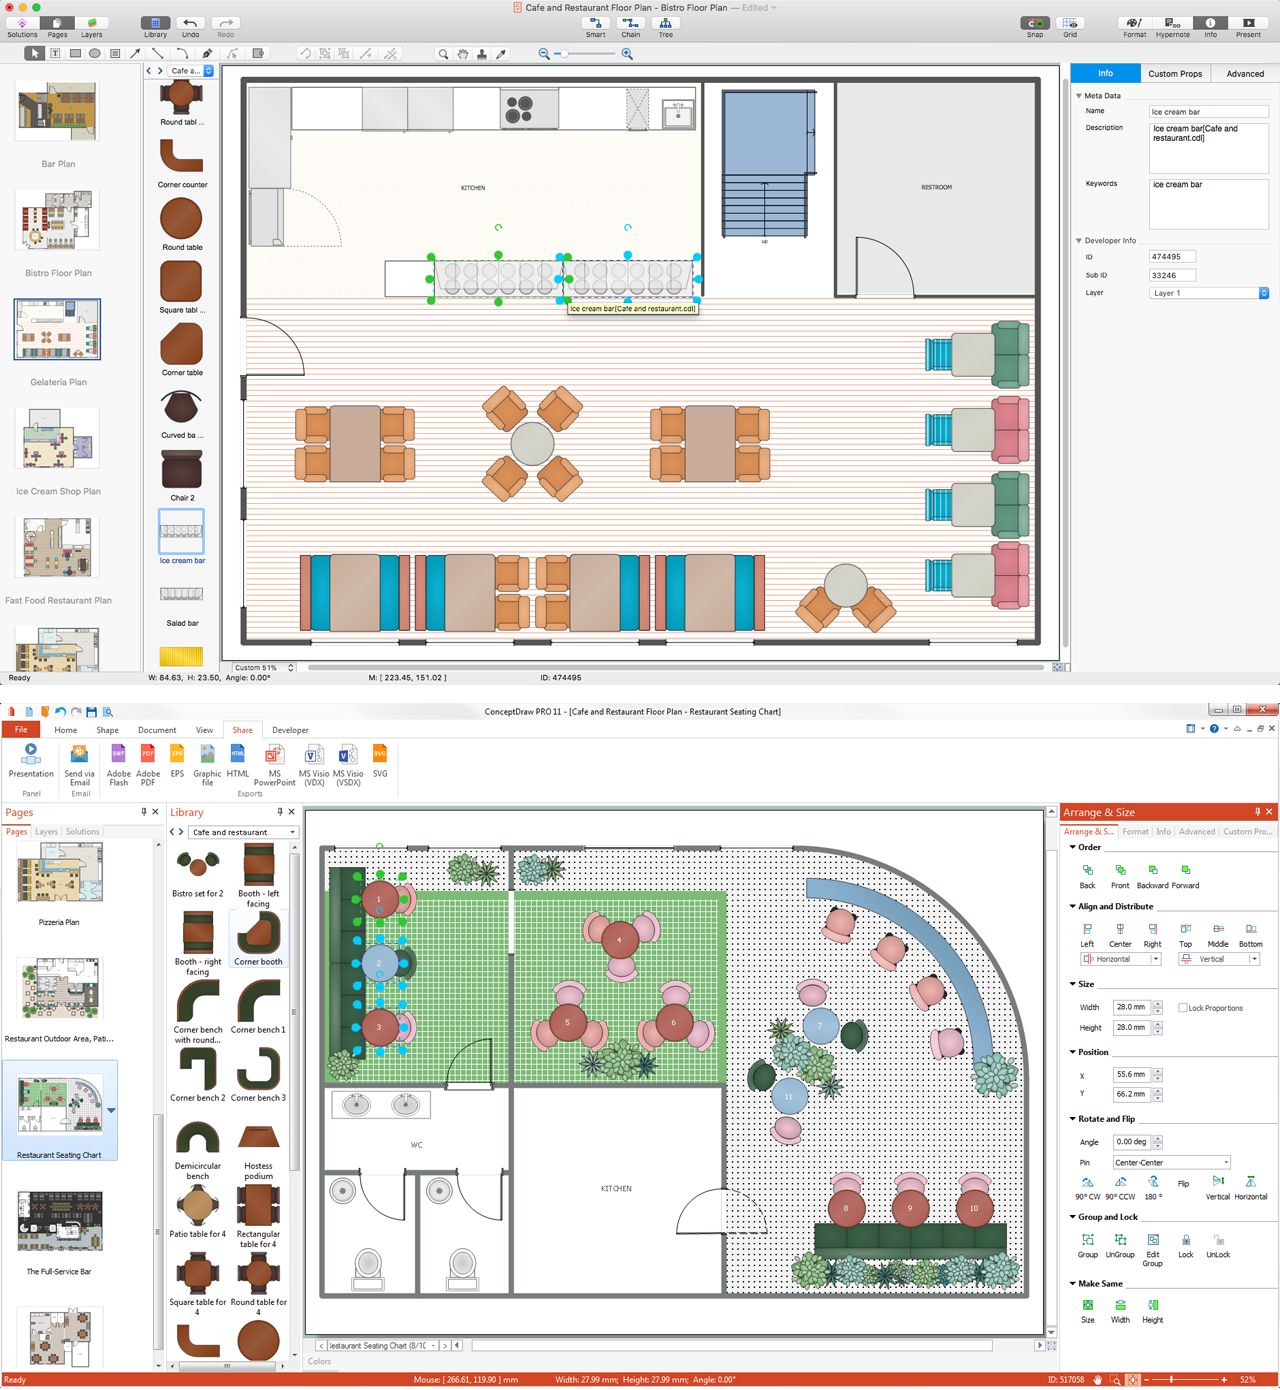 Interior design software building plan examples for Interior design software